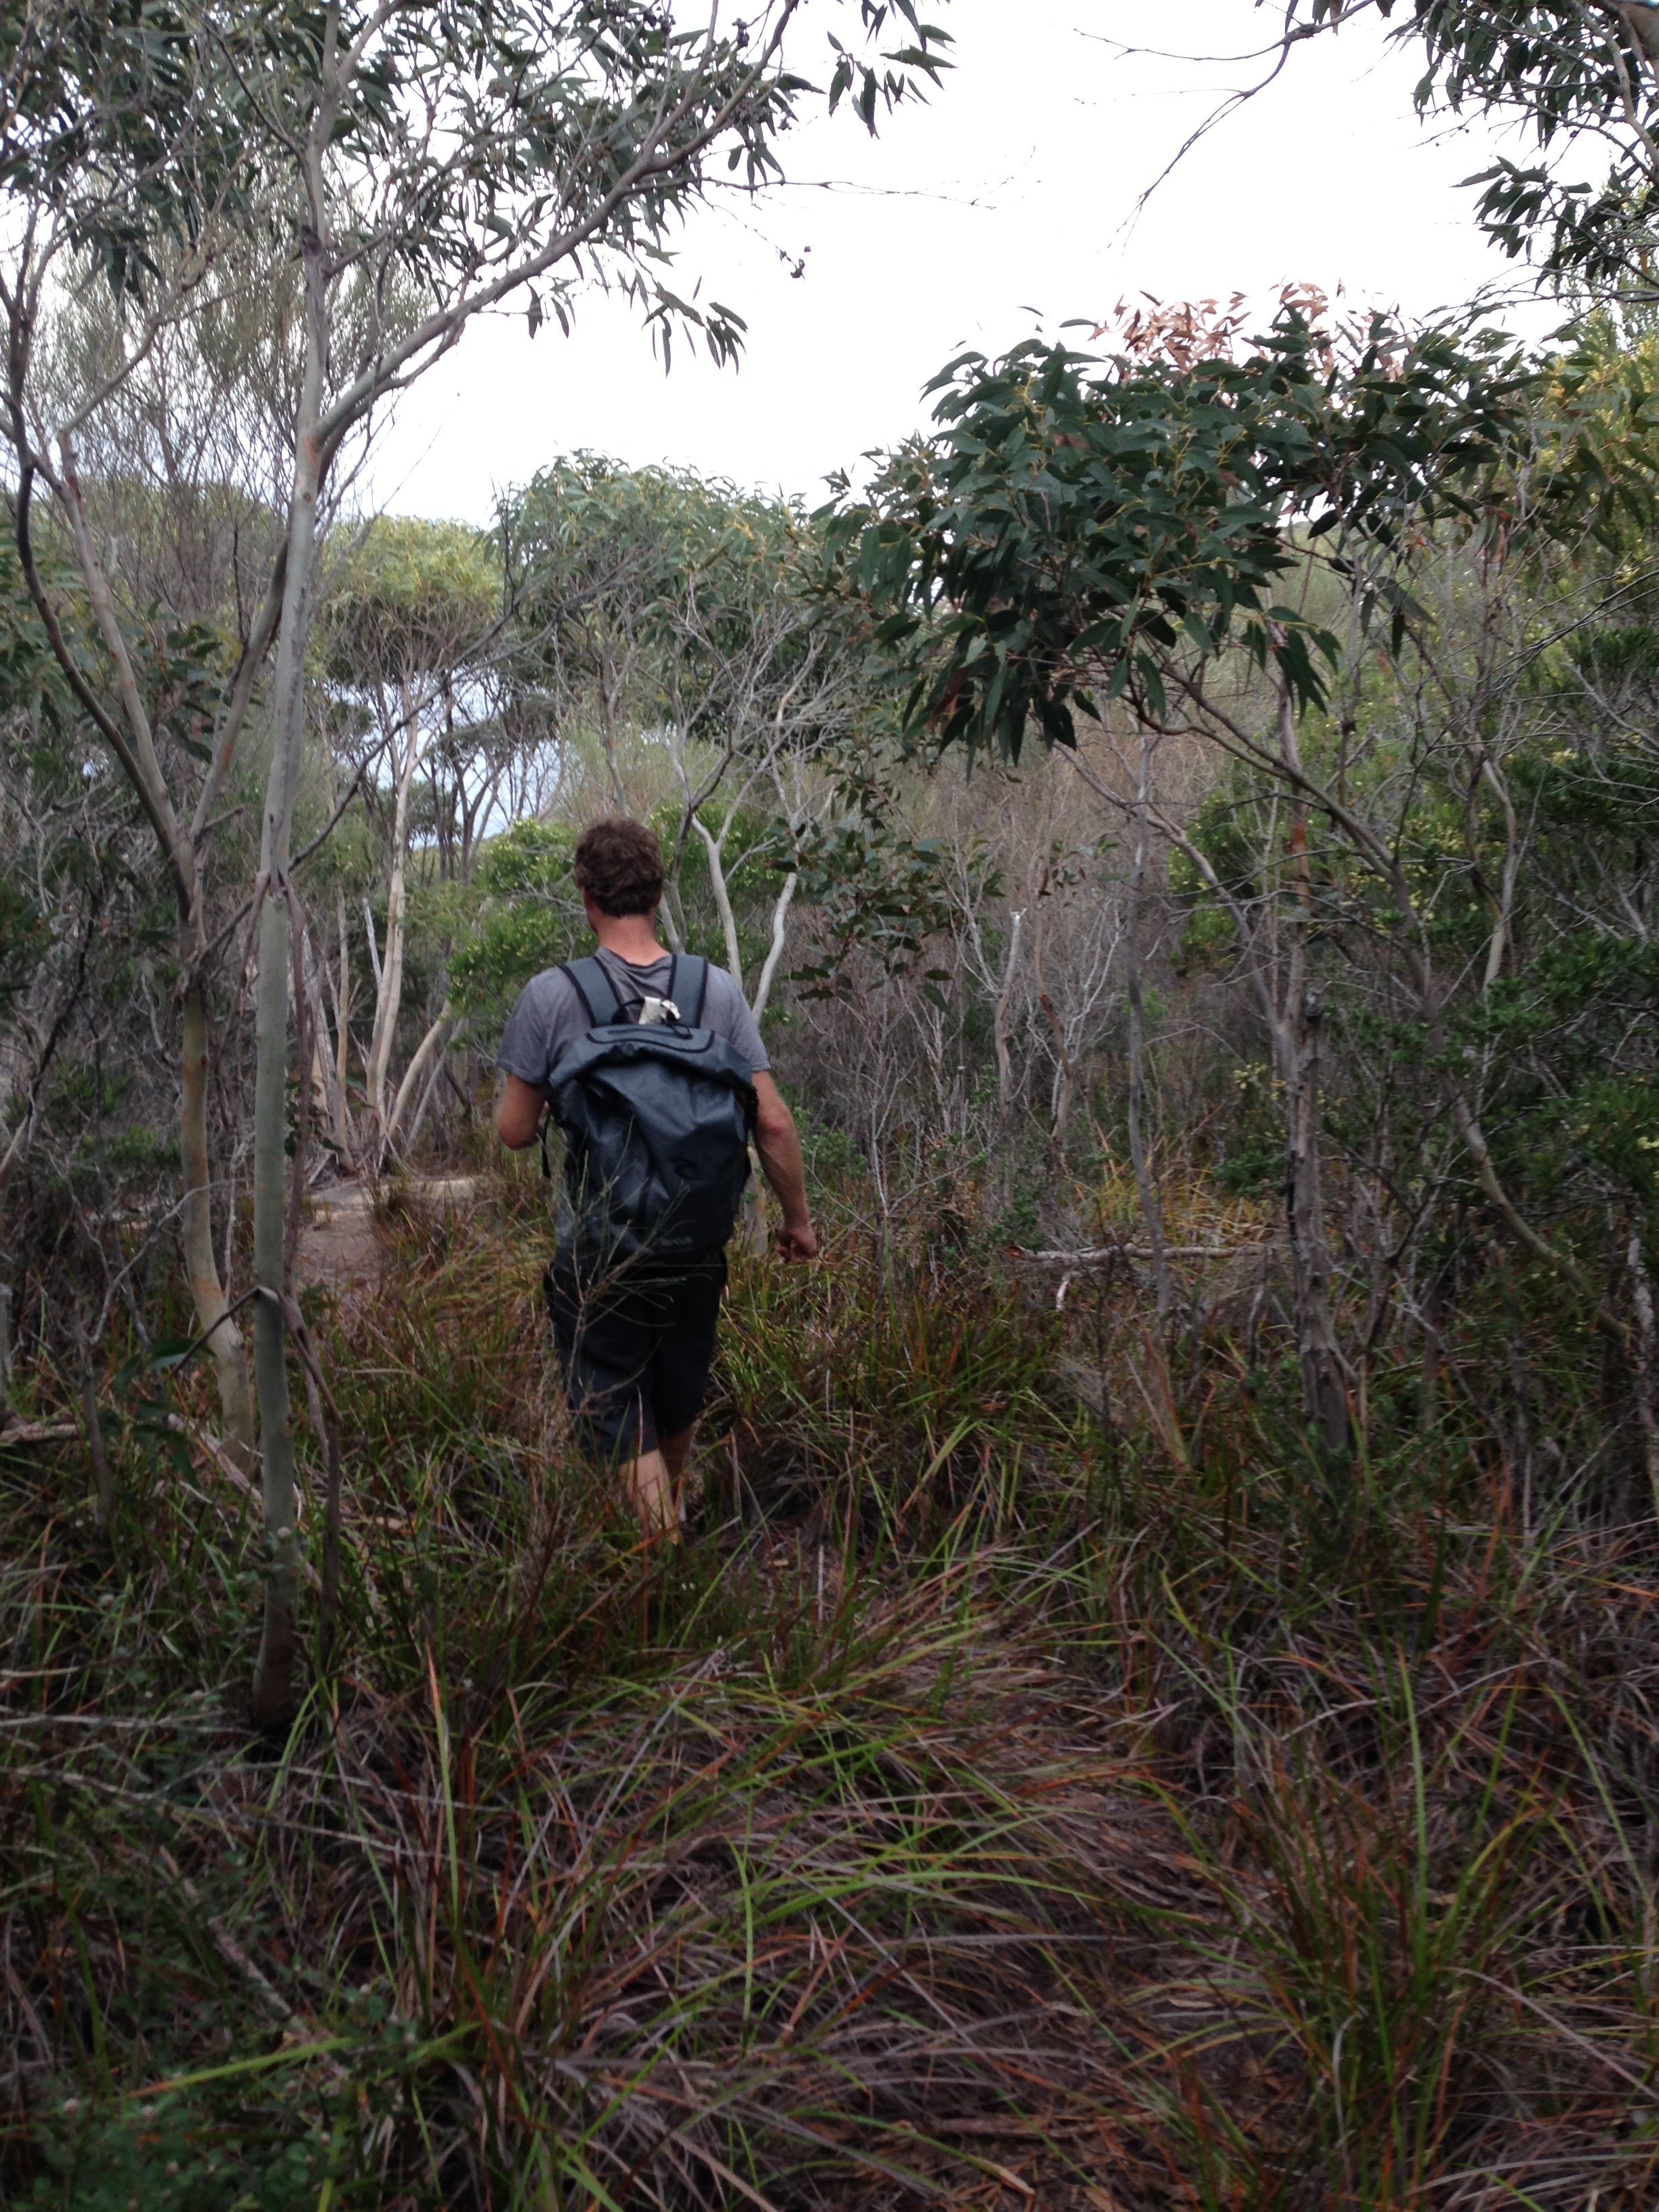 Mick leading the way to the Crash sight, scaring the snakes off for me.